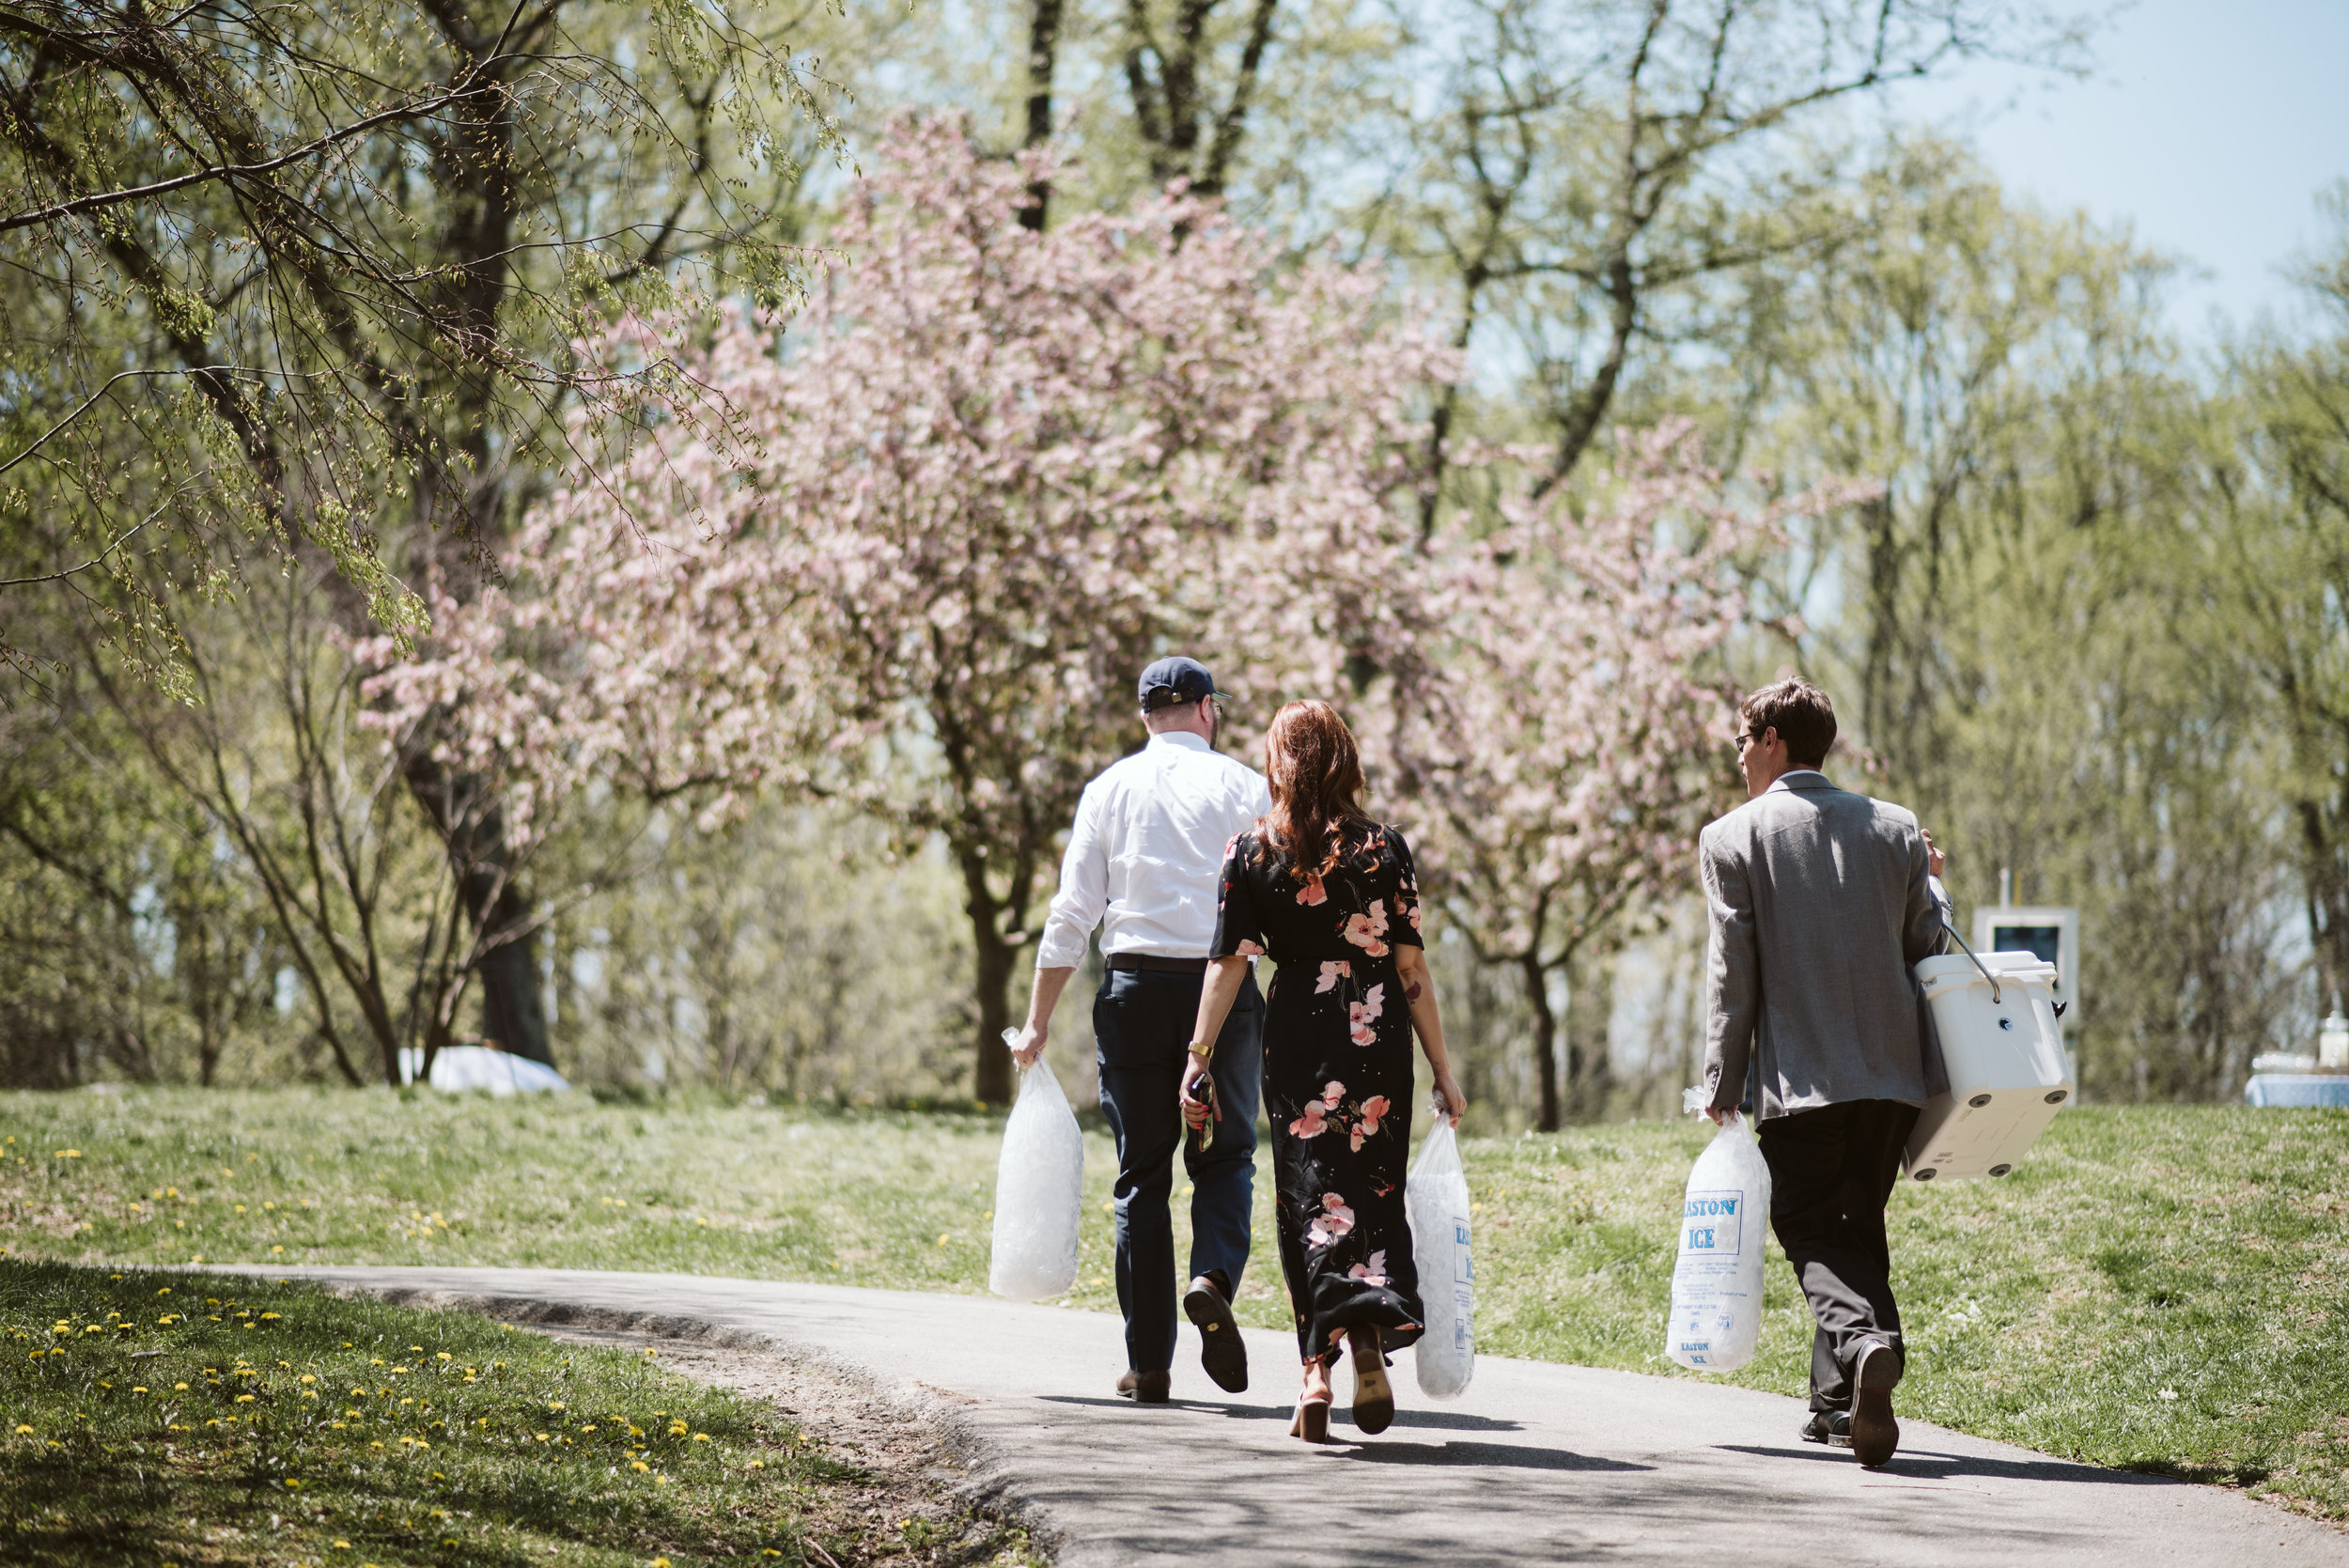 Spring Outdoor Wedding, Park, Baltimore Wedding Photographer, DIY, Classic, Upcycled, Garden Party, Romantic, Wedding Guests Helping with Reception